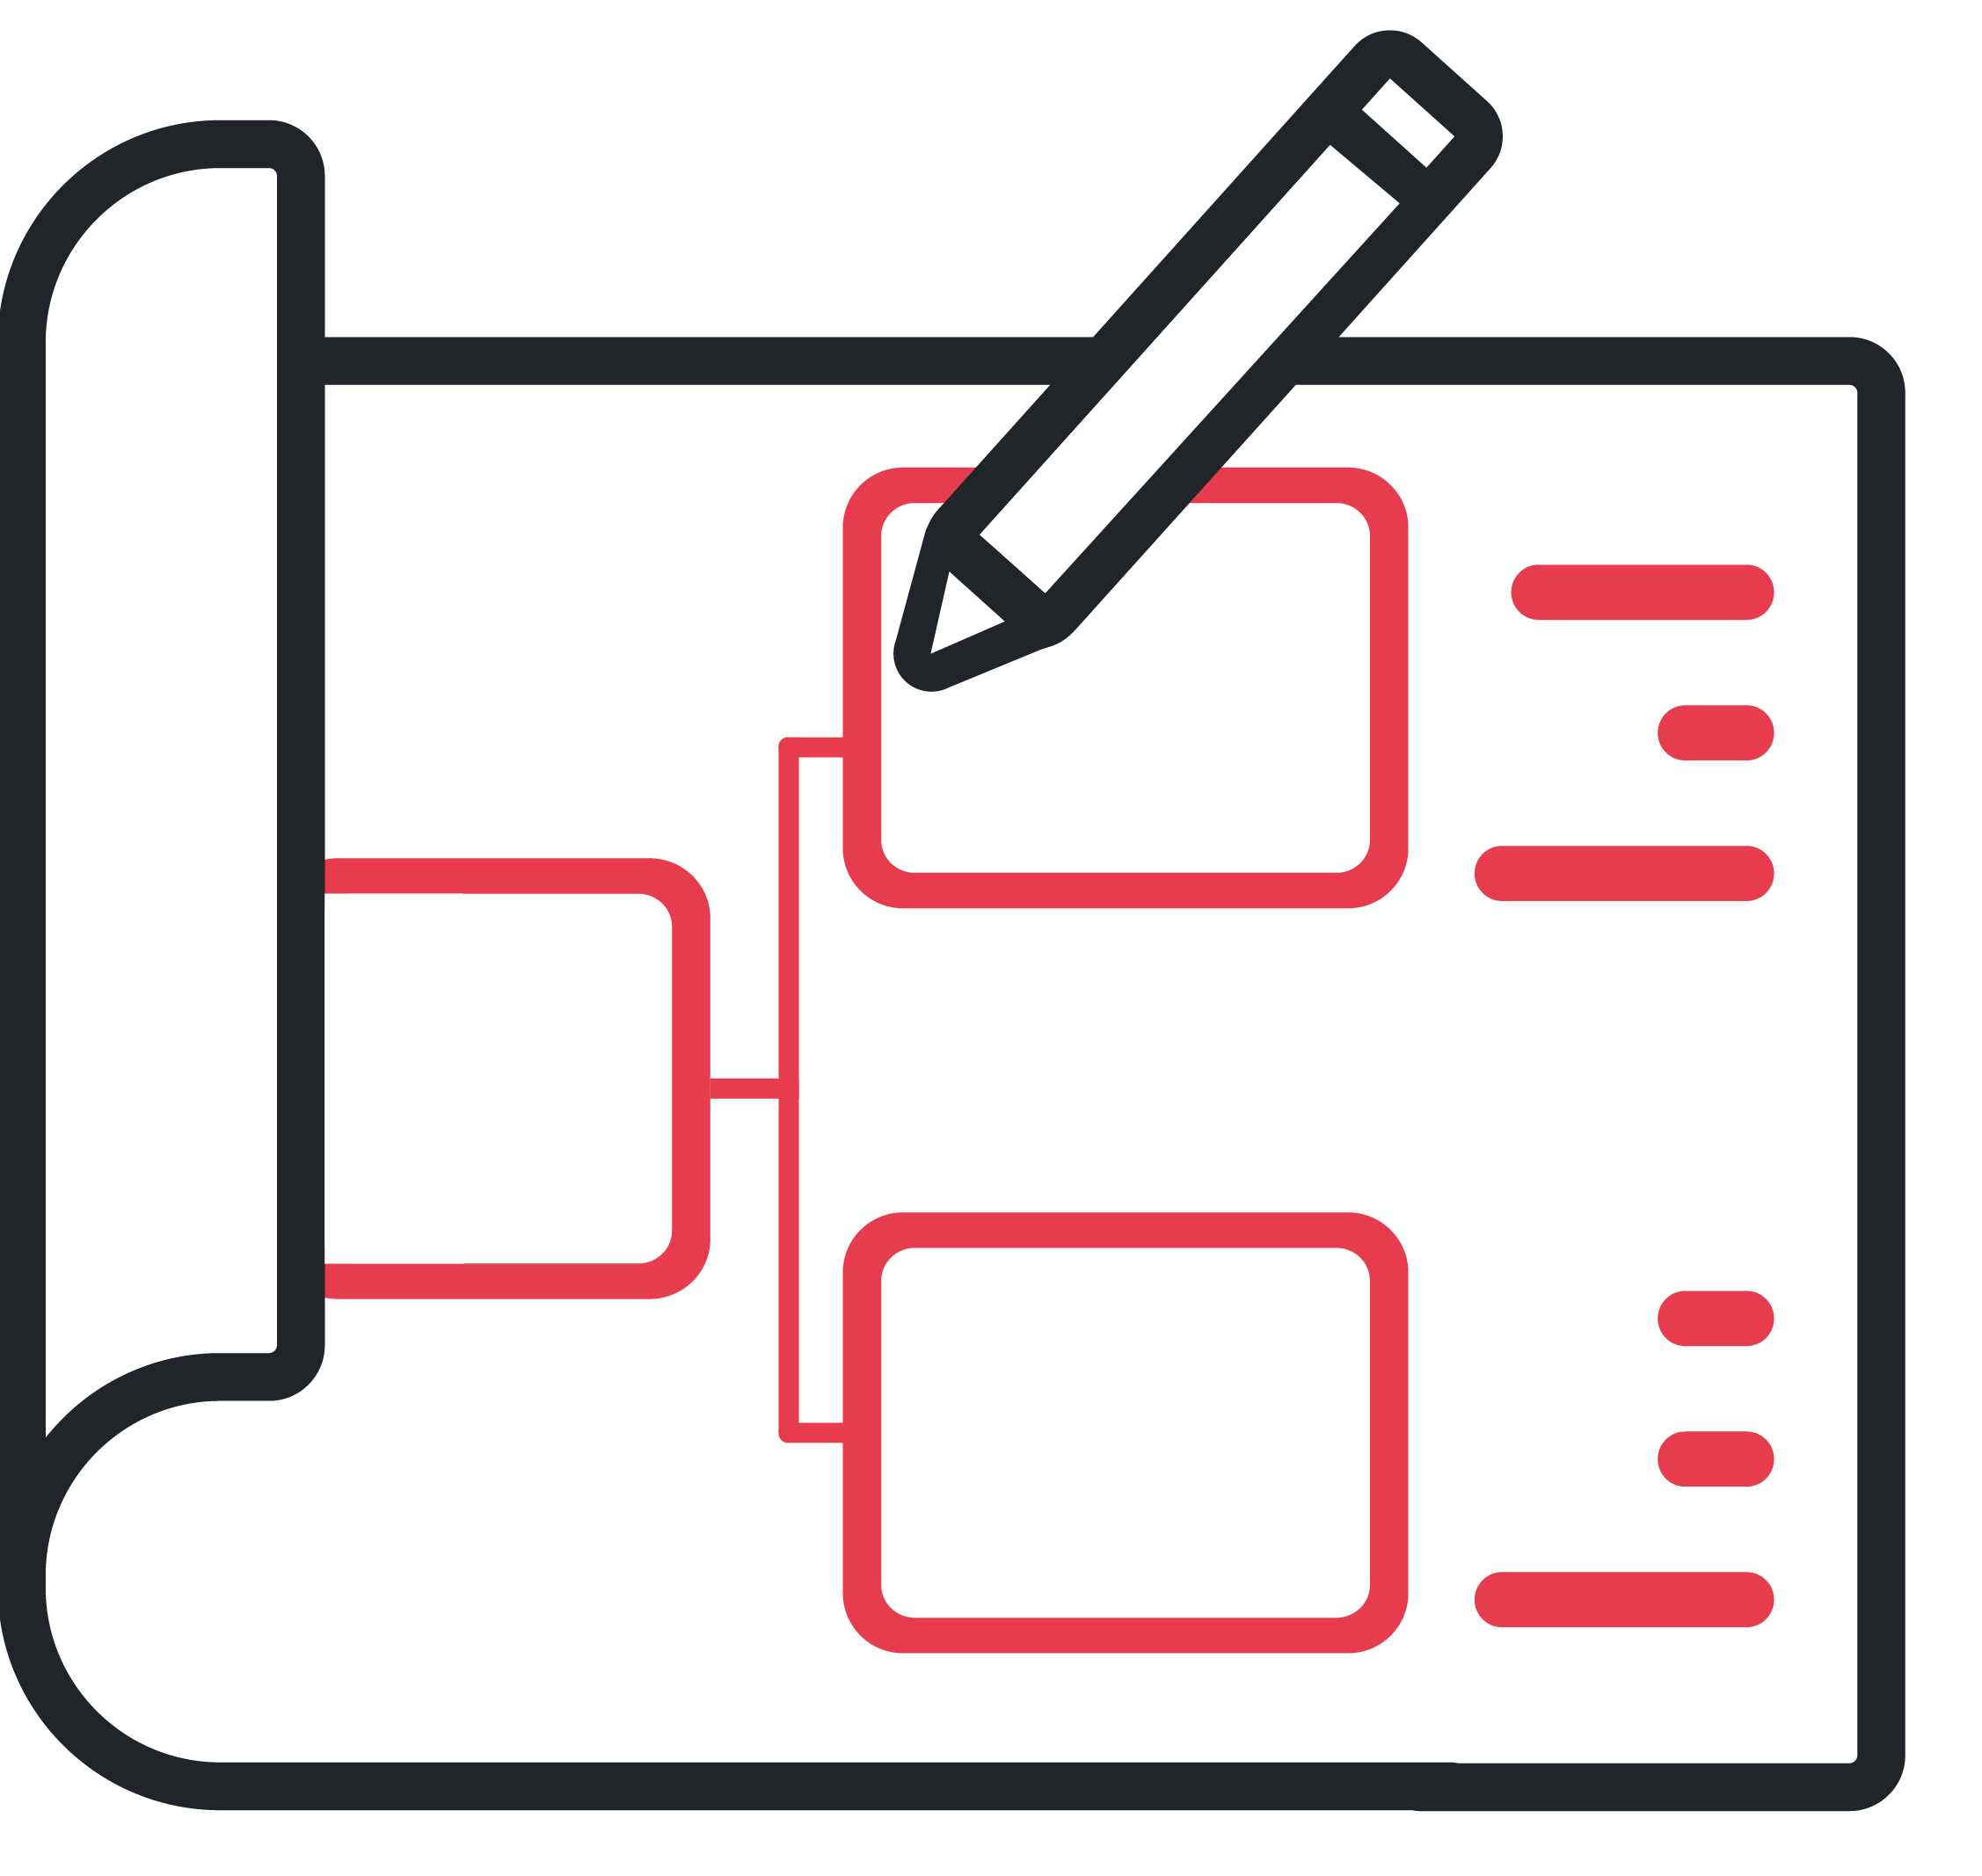 Graphic Icon Depicting Wireframing and Prototyping Activities